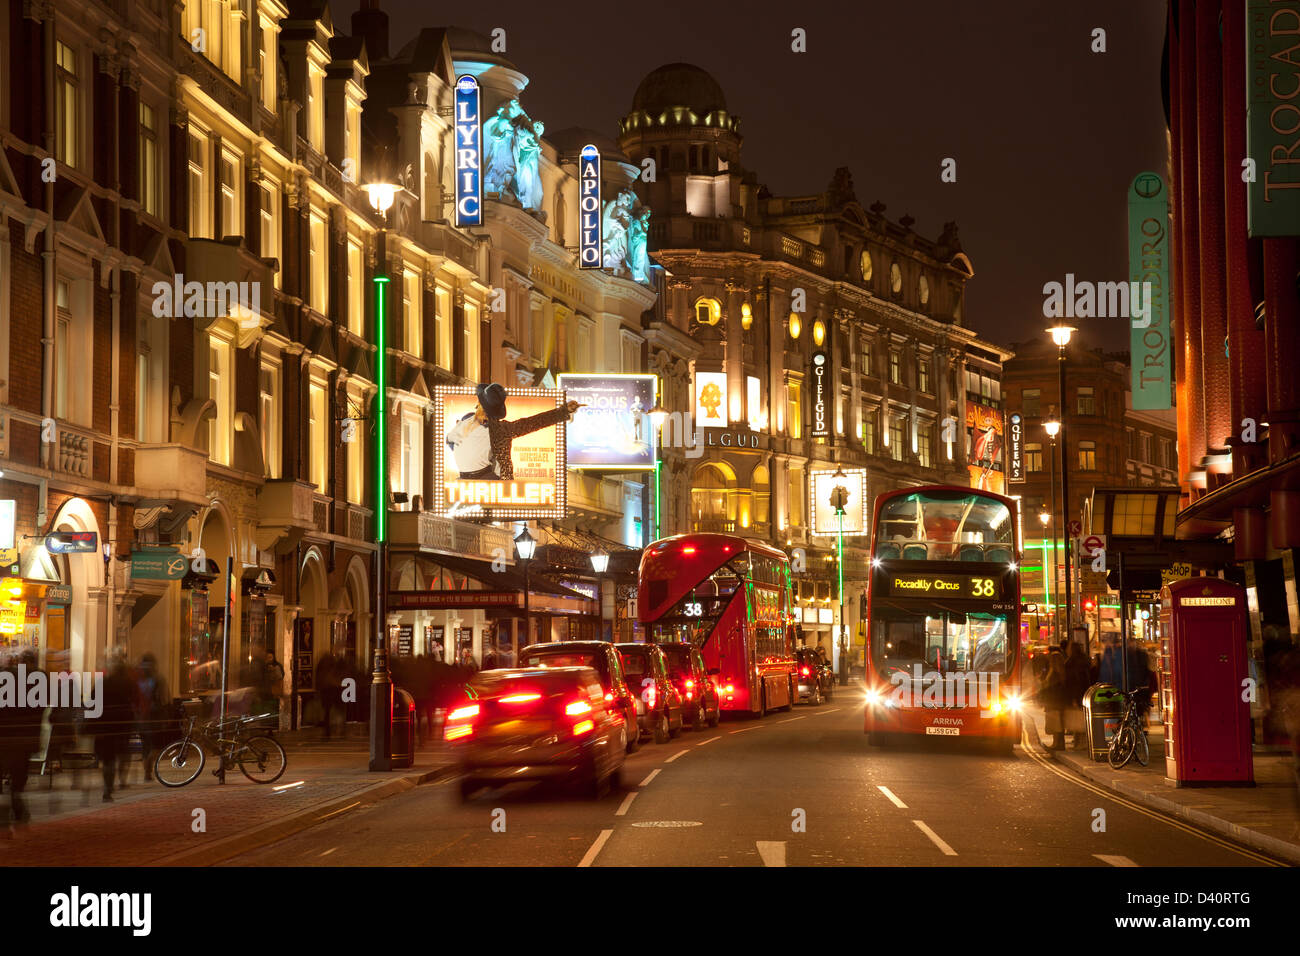 Heart of London theatreland, Shaftesbury Avenue: Lyric, Apollo, Gielgud, Queens theatres with 2 buses, inc new Routemaster - Stock Image